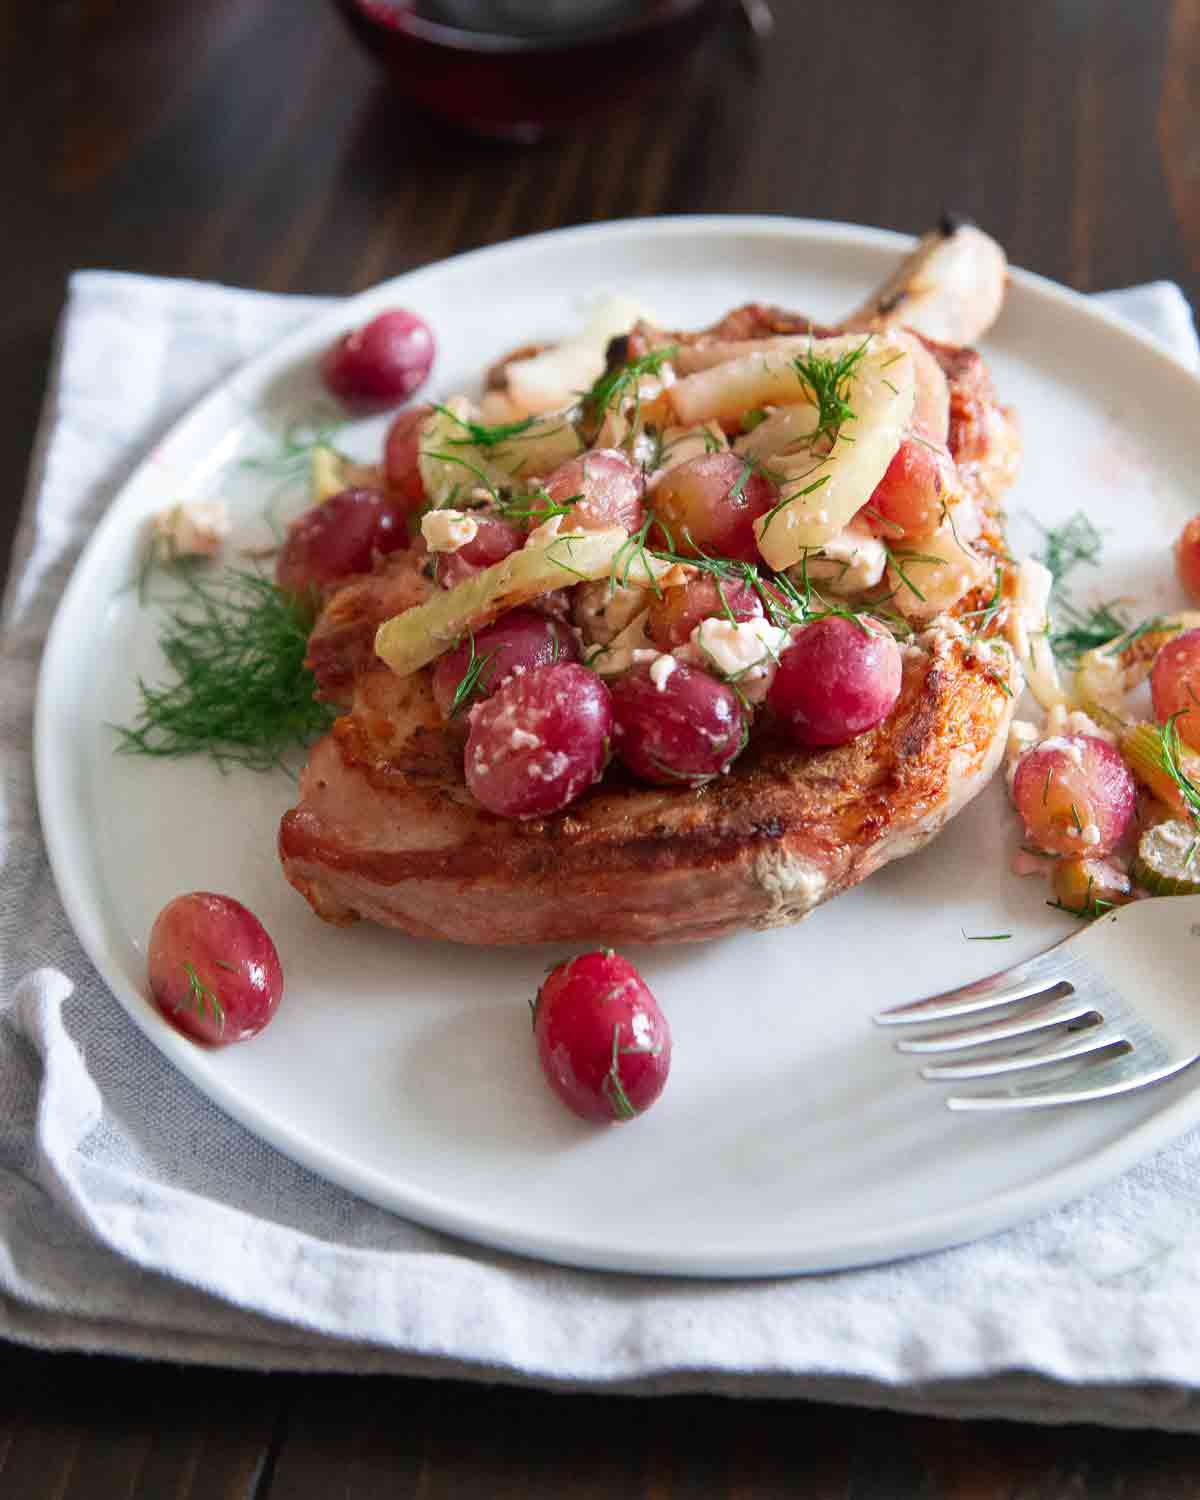 Looking for a meal to impress that's super easy and made all on the grill? Try these grilled pork chops with fennel and grapes.